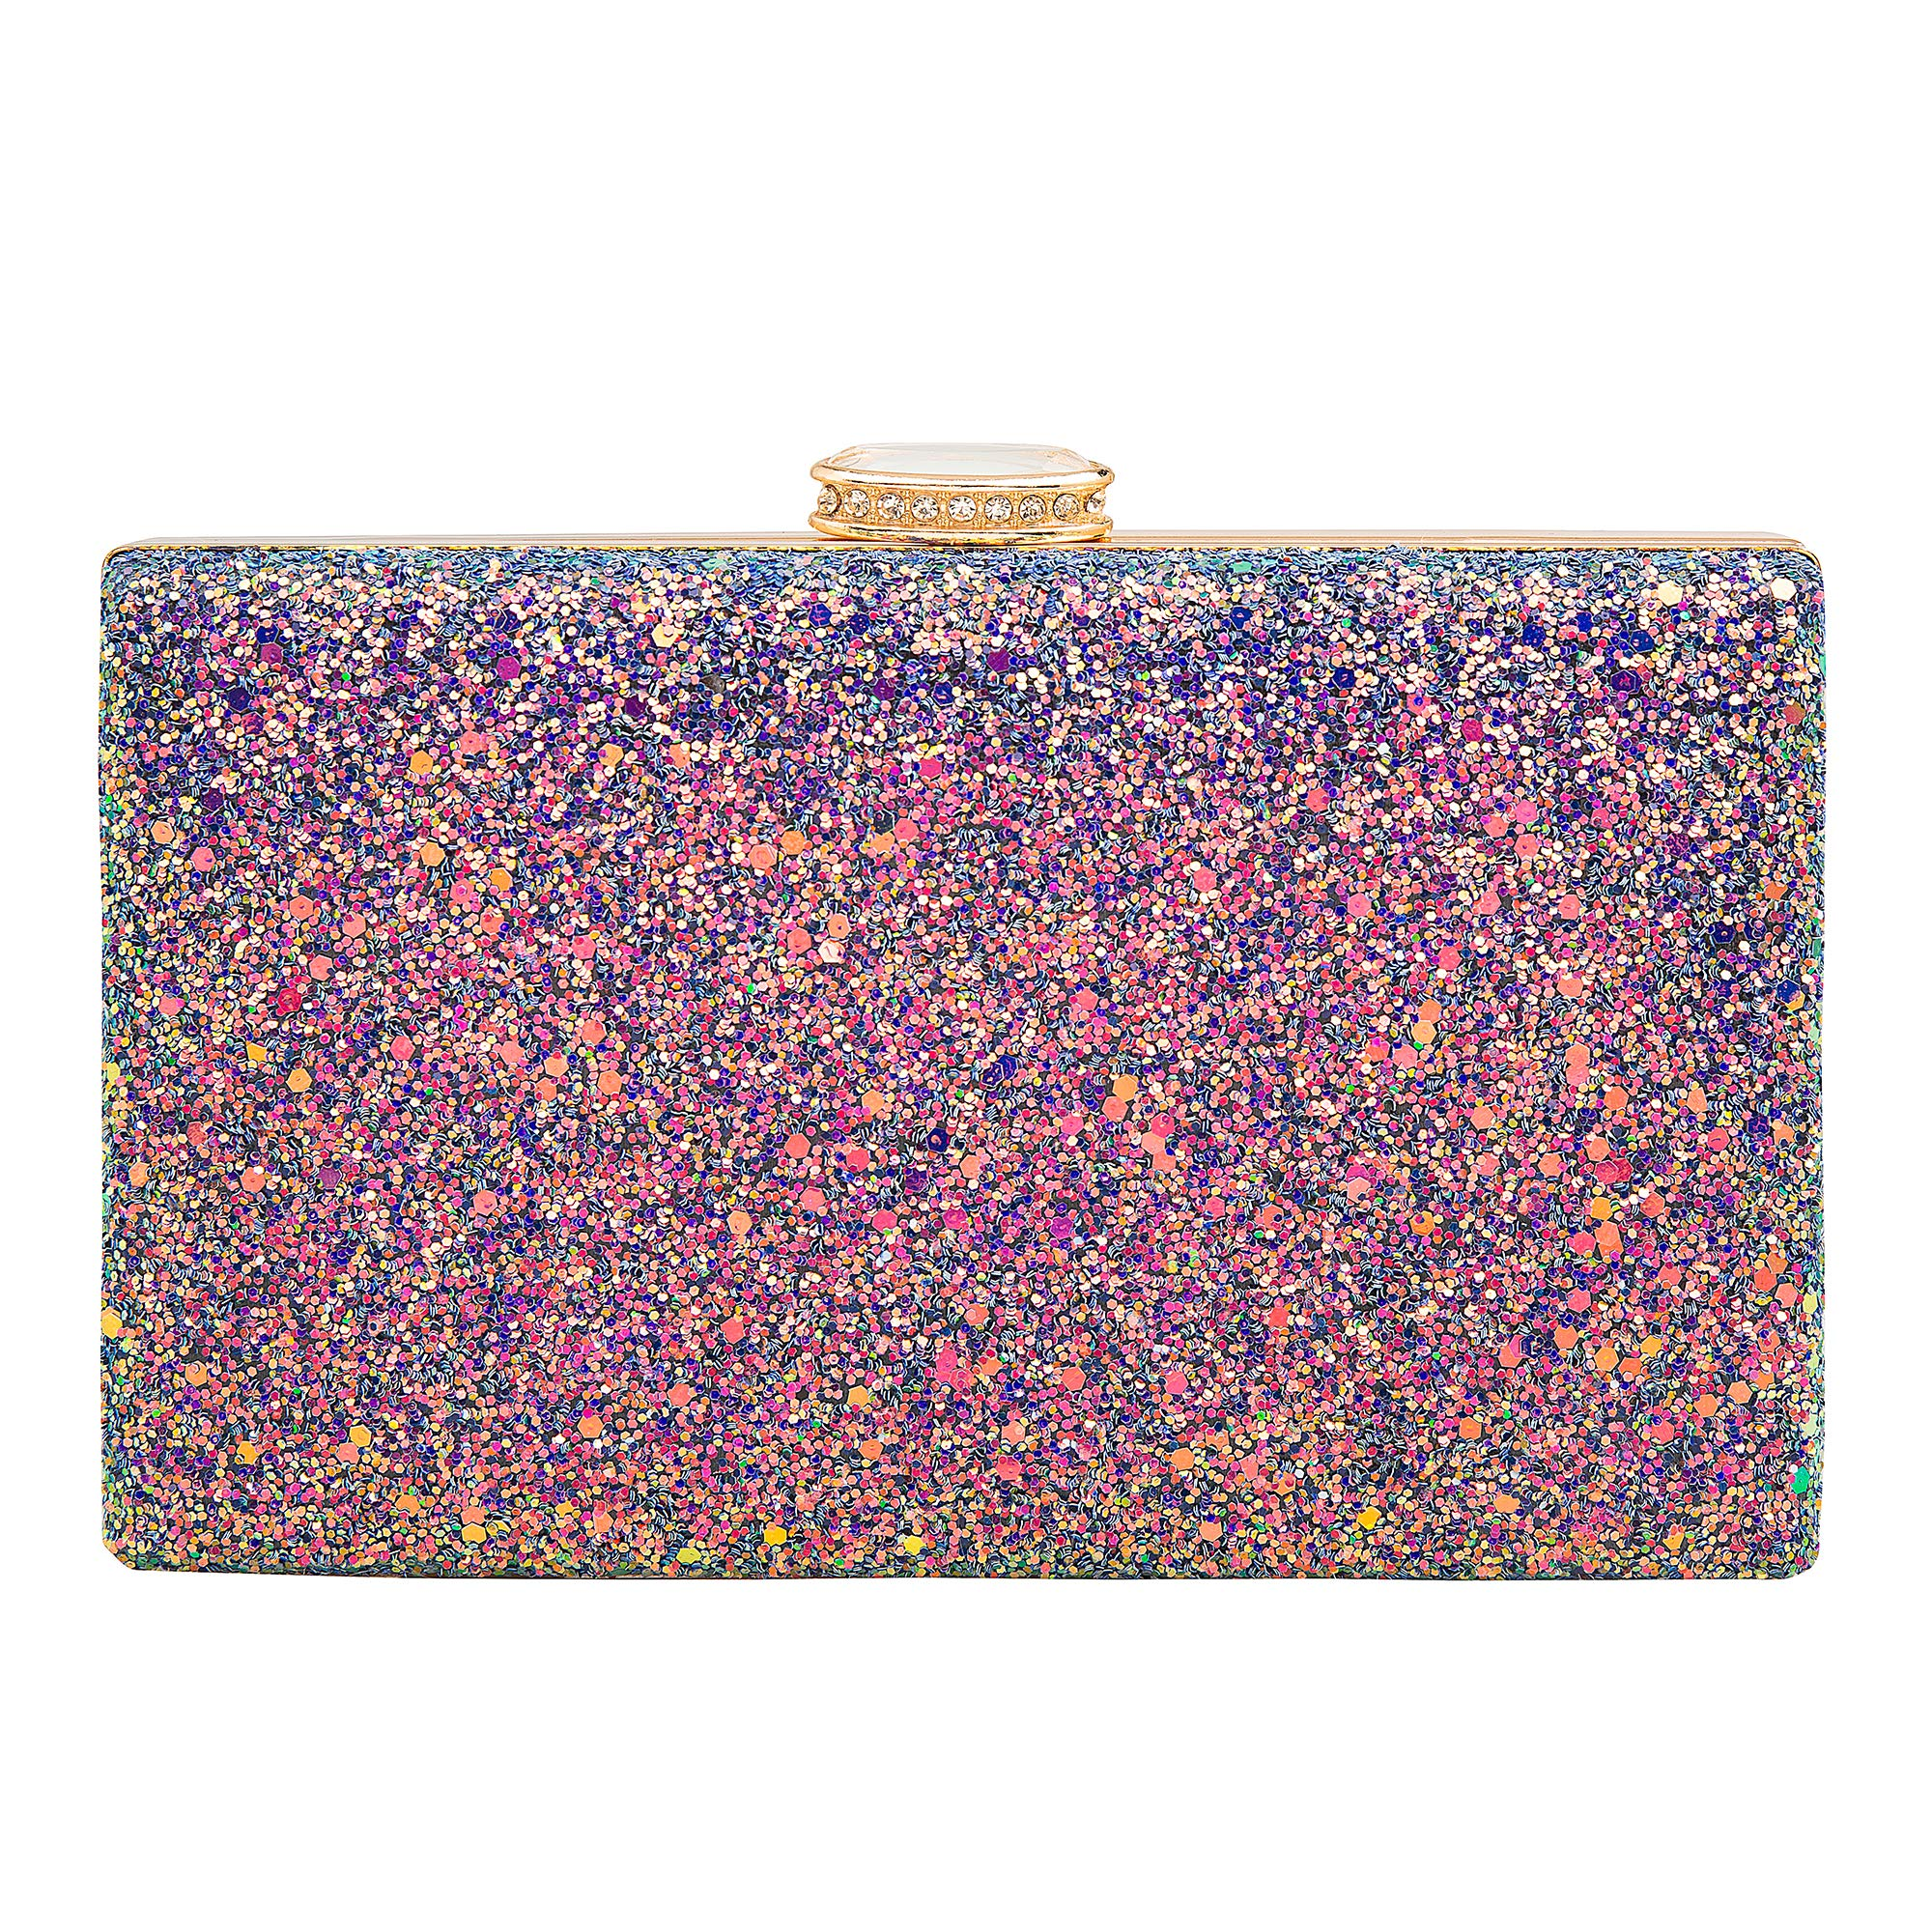 Women's Elegant Sparkling Glitter Evening Clutch Bags BlingEvening Handbag Purses For Wedding Prom Bride(Purple)